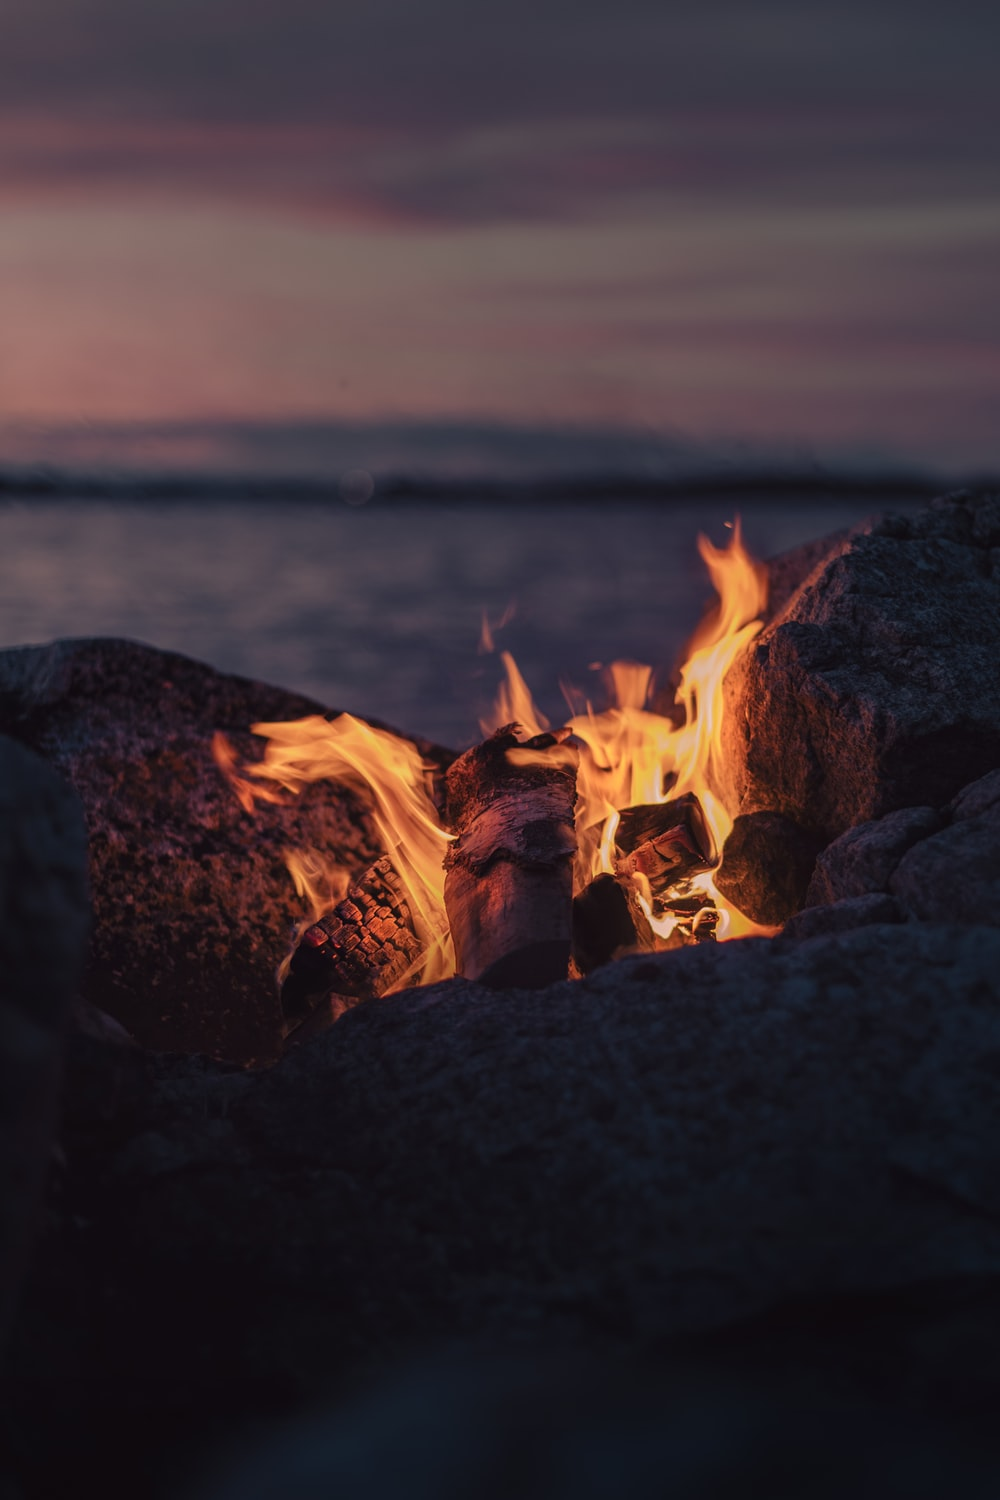 fire and ember